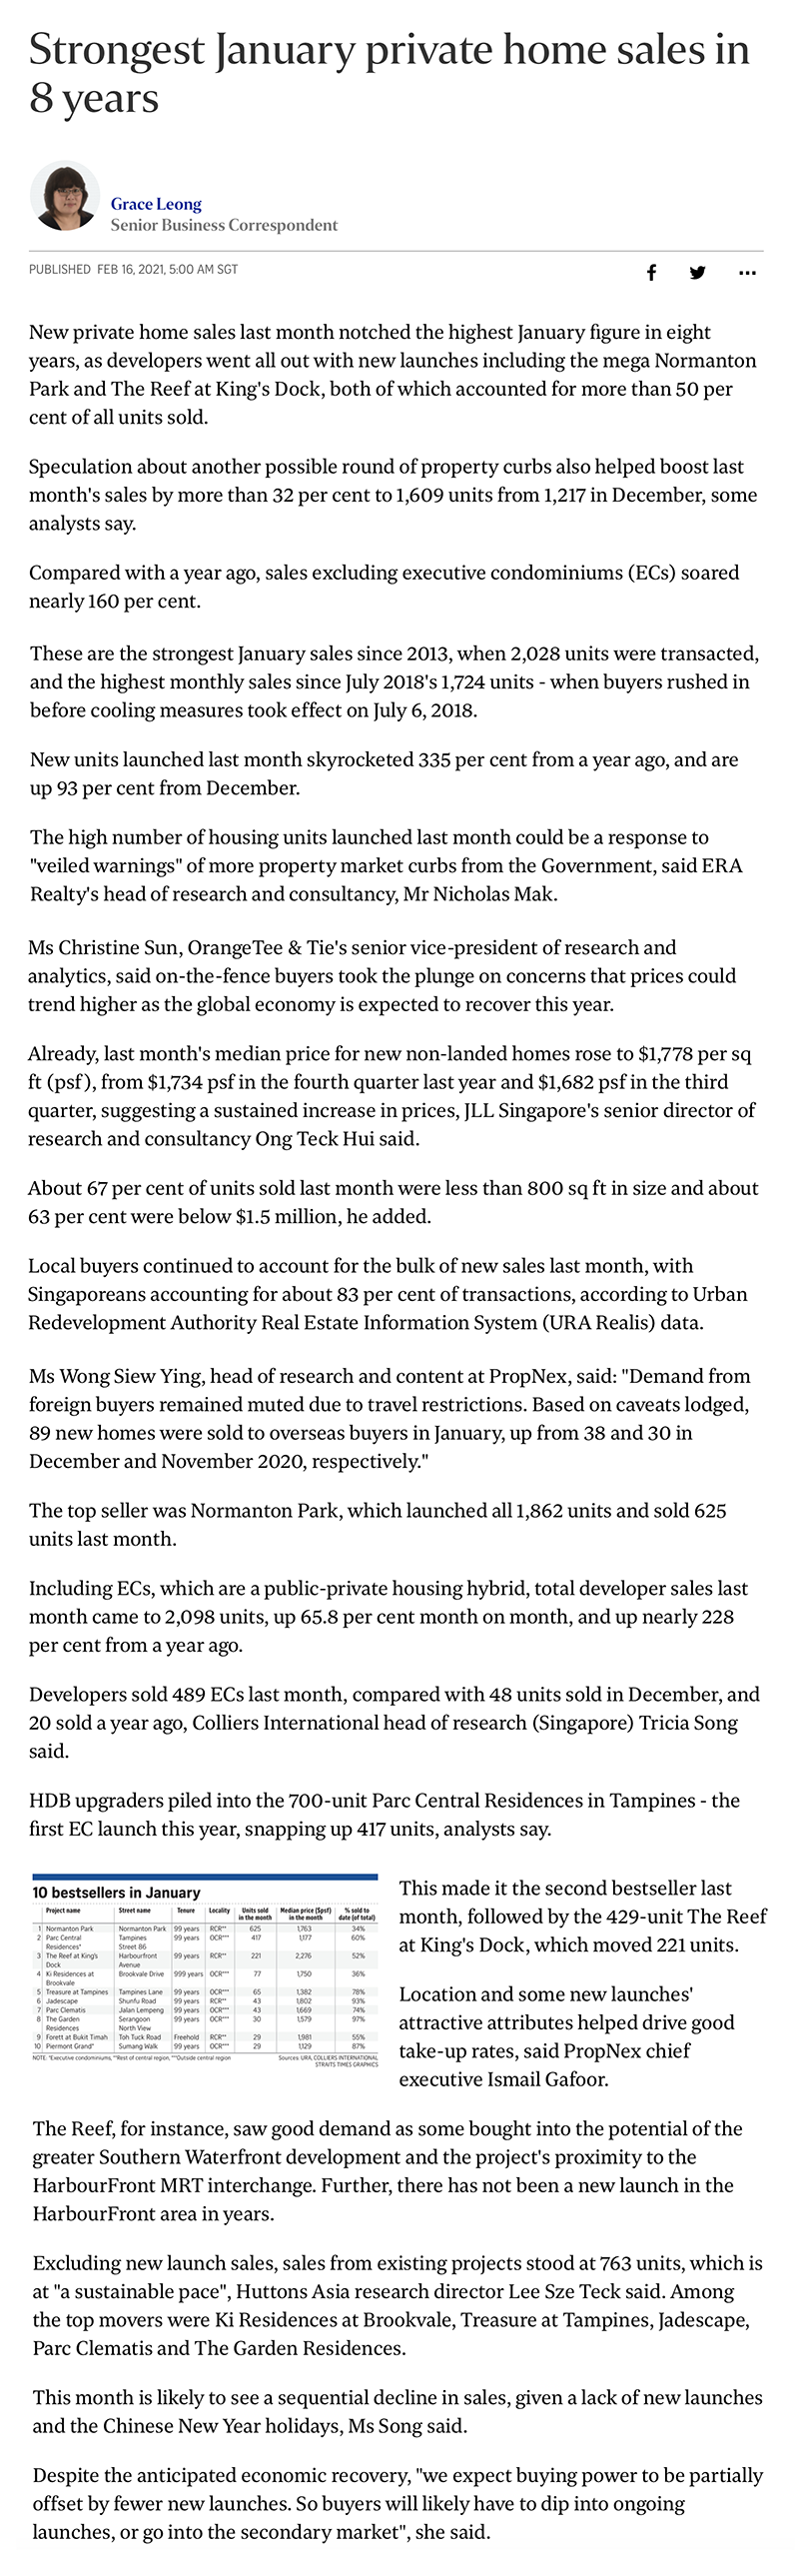 The Line @ Tanjong Rhu - Strongest January private home sales in 8 years